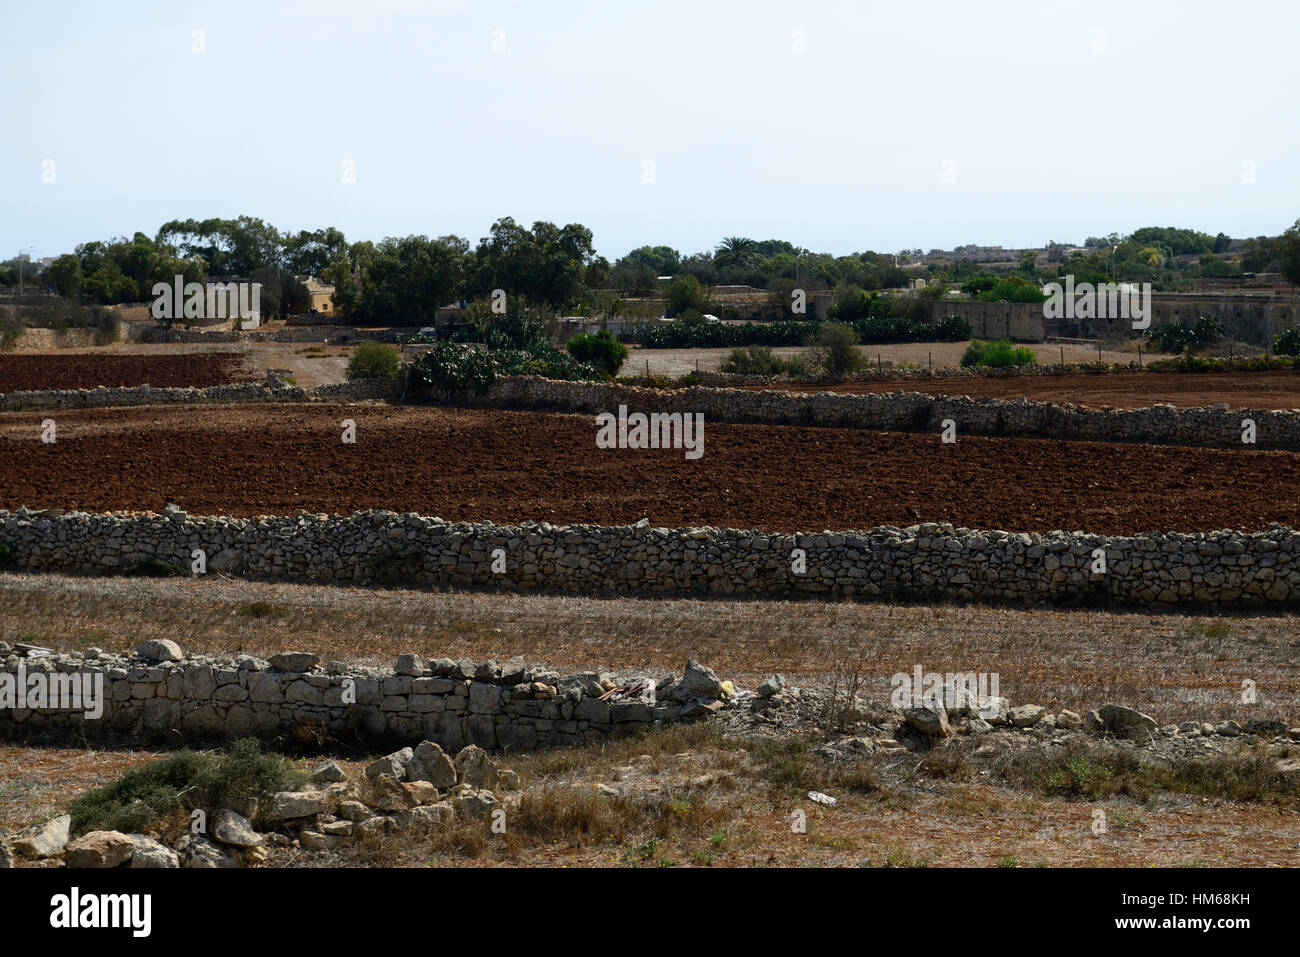 stone walls fields farm farming subsistence poor agriculture land agricultural soil Malta Mediterranean dry drought - Stock Image